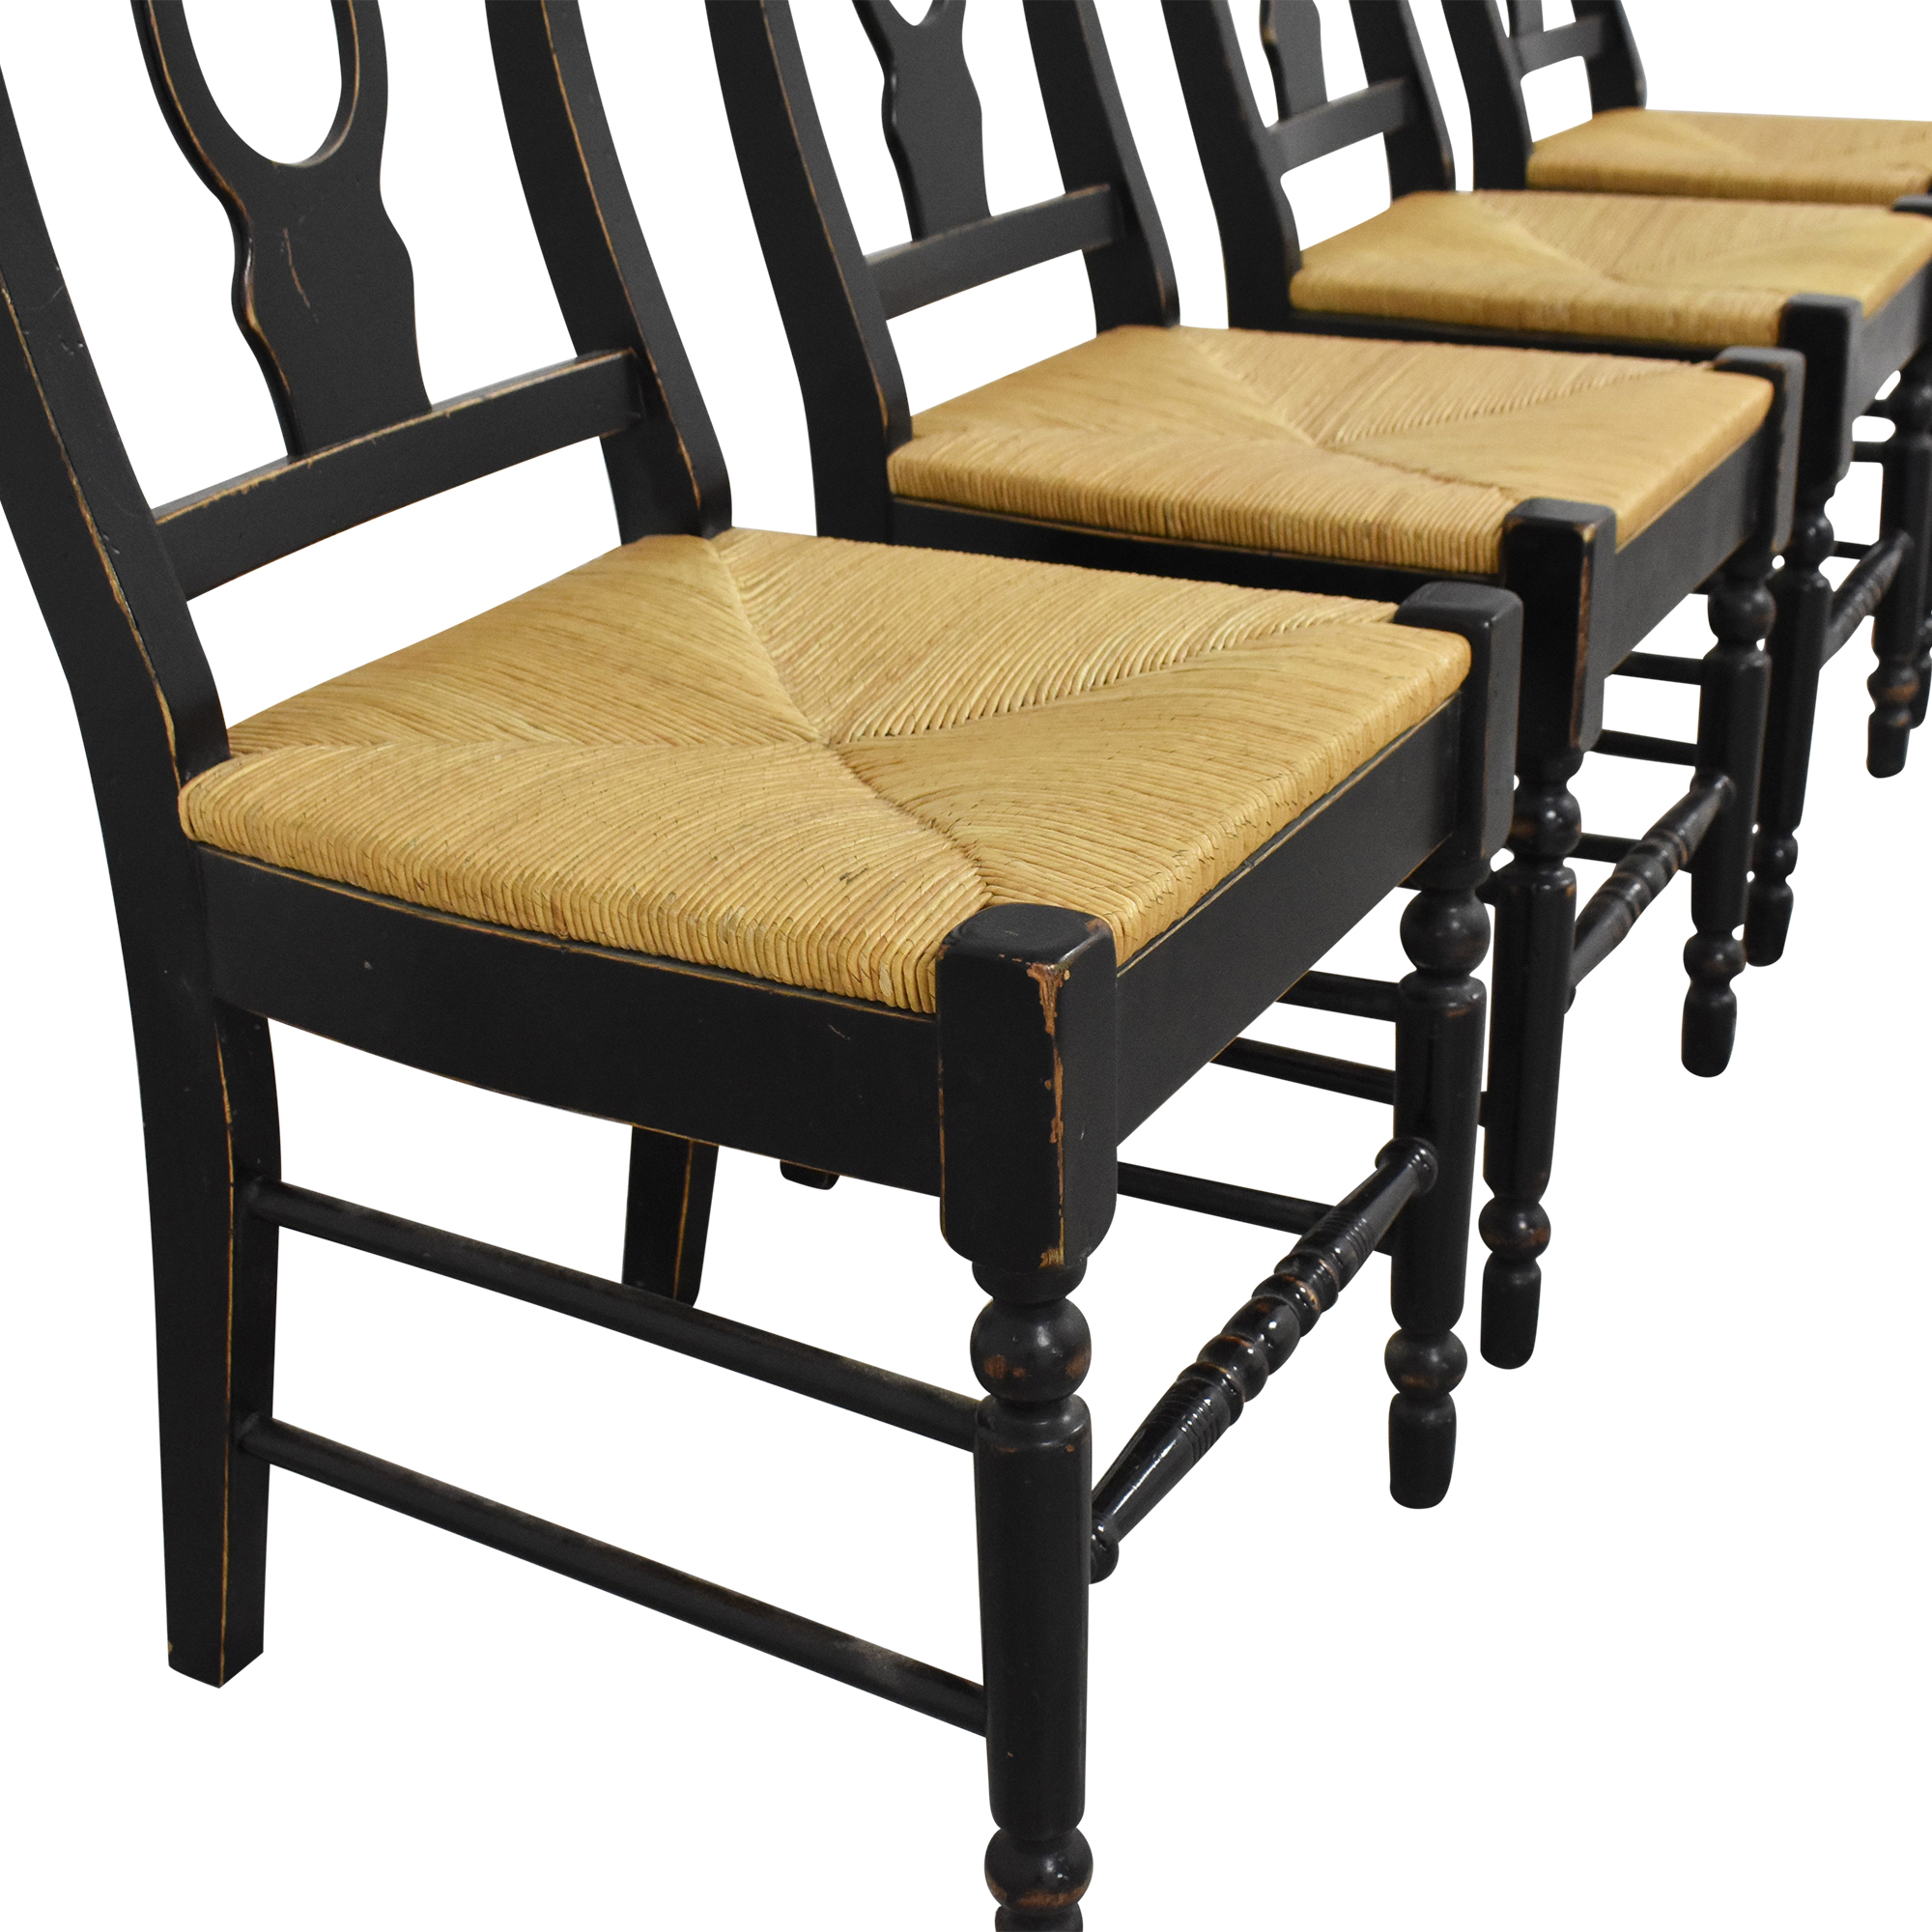 Country-Style Dining Chairs second hand